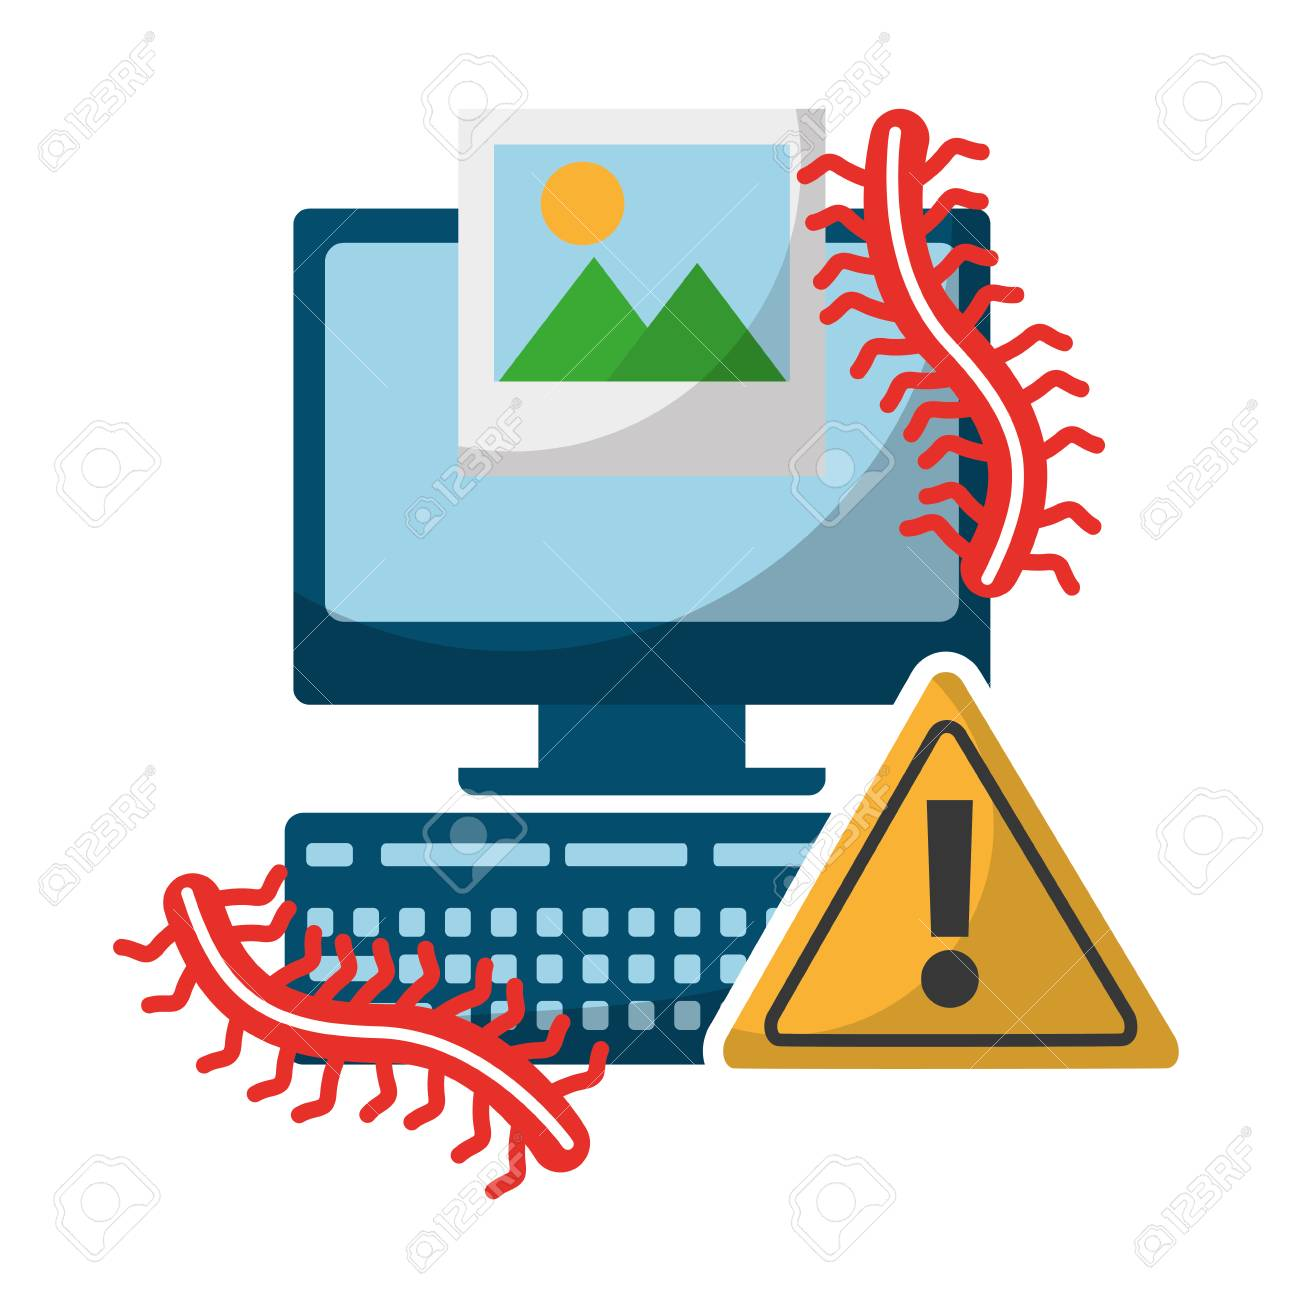 computer alert sign picture worms data protection vector illustration - 109824595